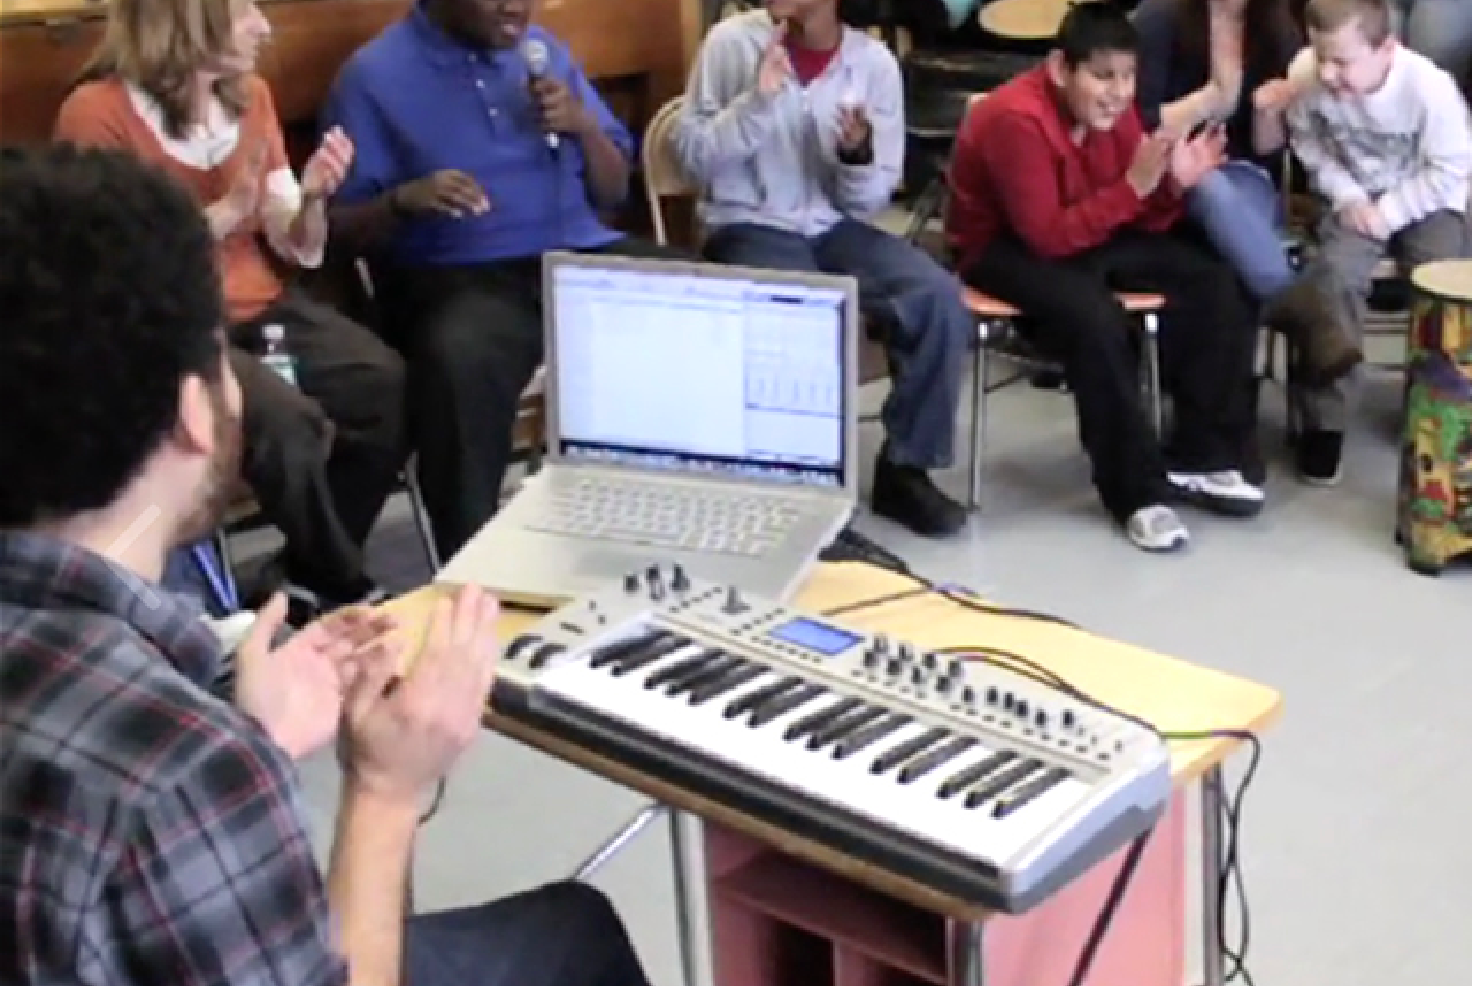 BEAT Teaching Artists sits behind a lap top and keyboard, clapping their hands, while a student beatboxes into a microphone and other students clap.